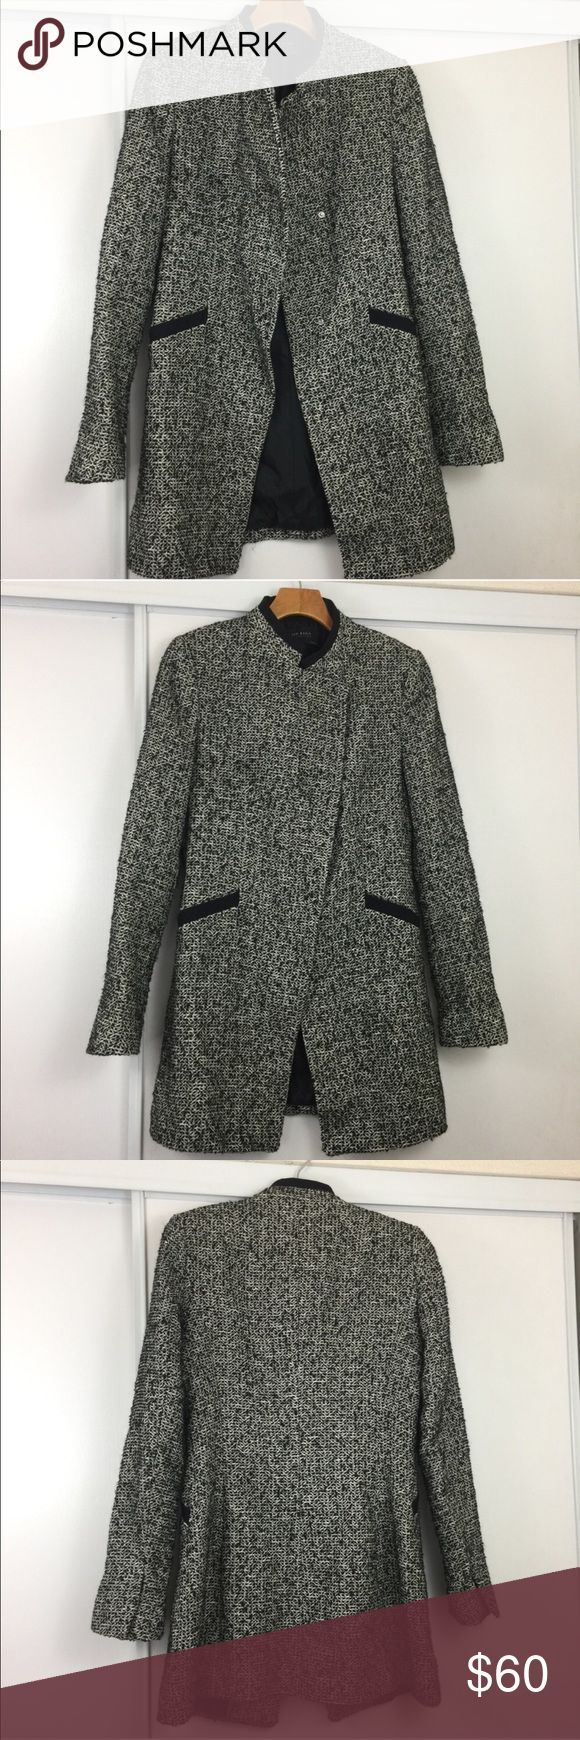 """Zara Winter Coat ❣️ Excellent condition. Size medium. Pit to pit 17.5"""". Length 30.5"""". No trades ❌❌ No modeling Zara Jackets & Coats"""